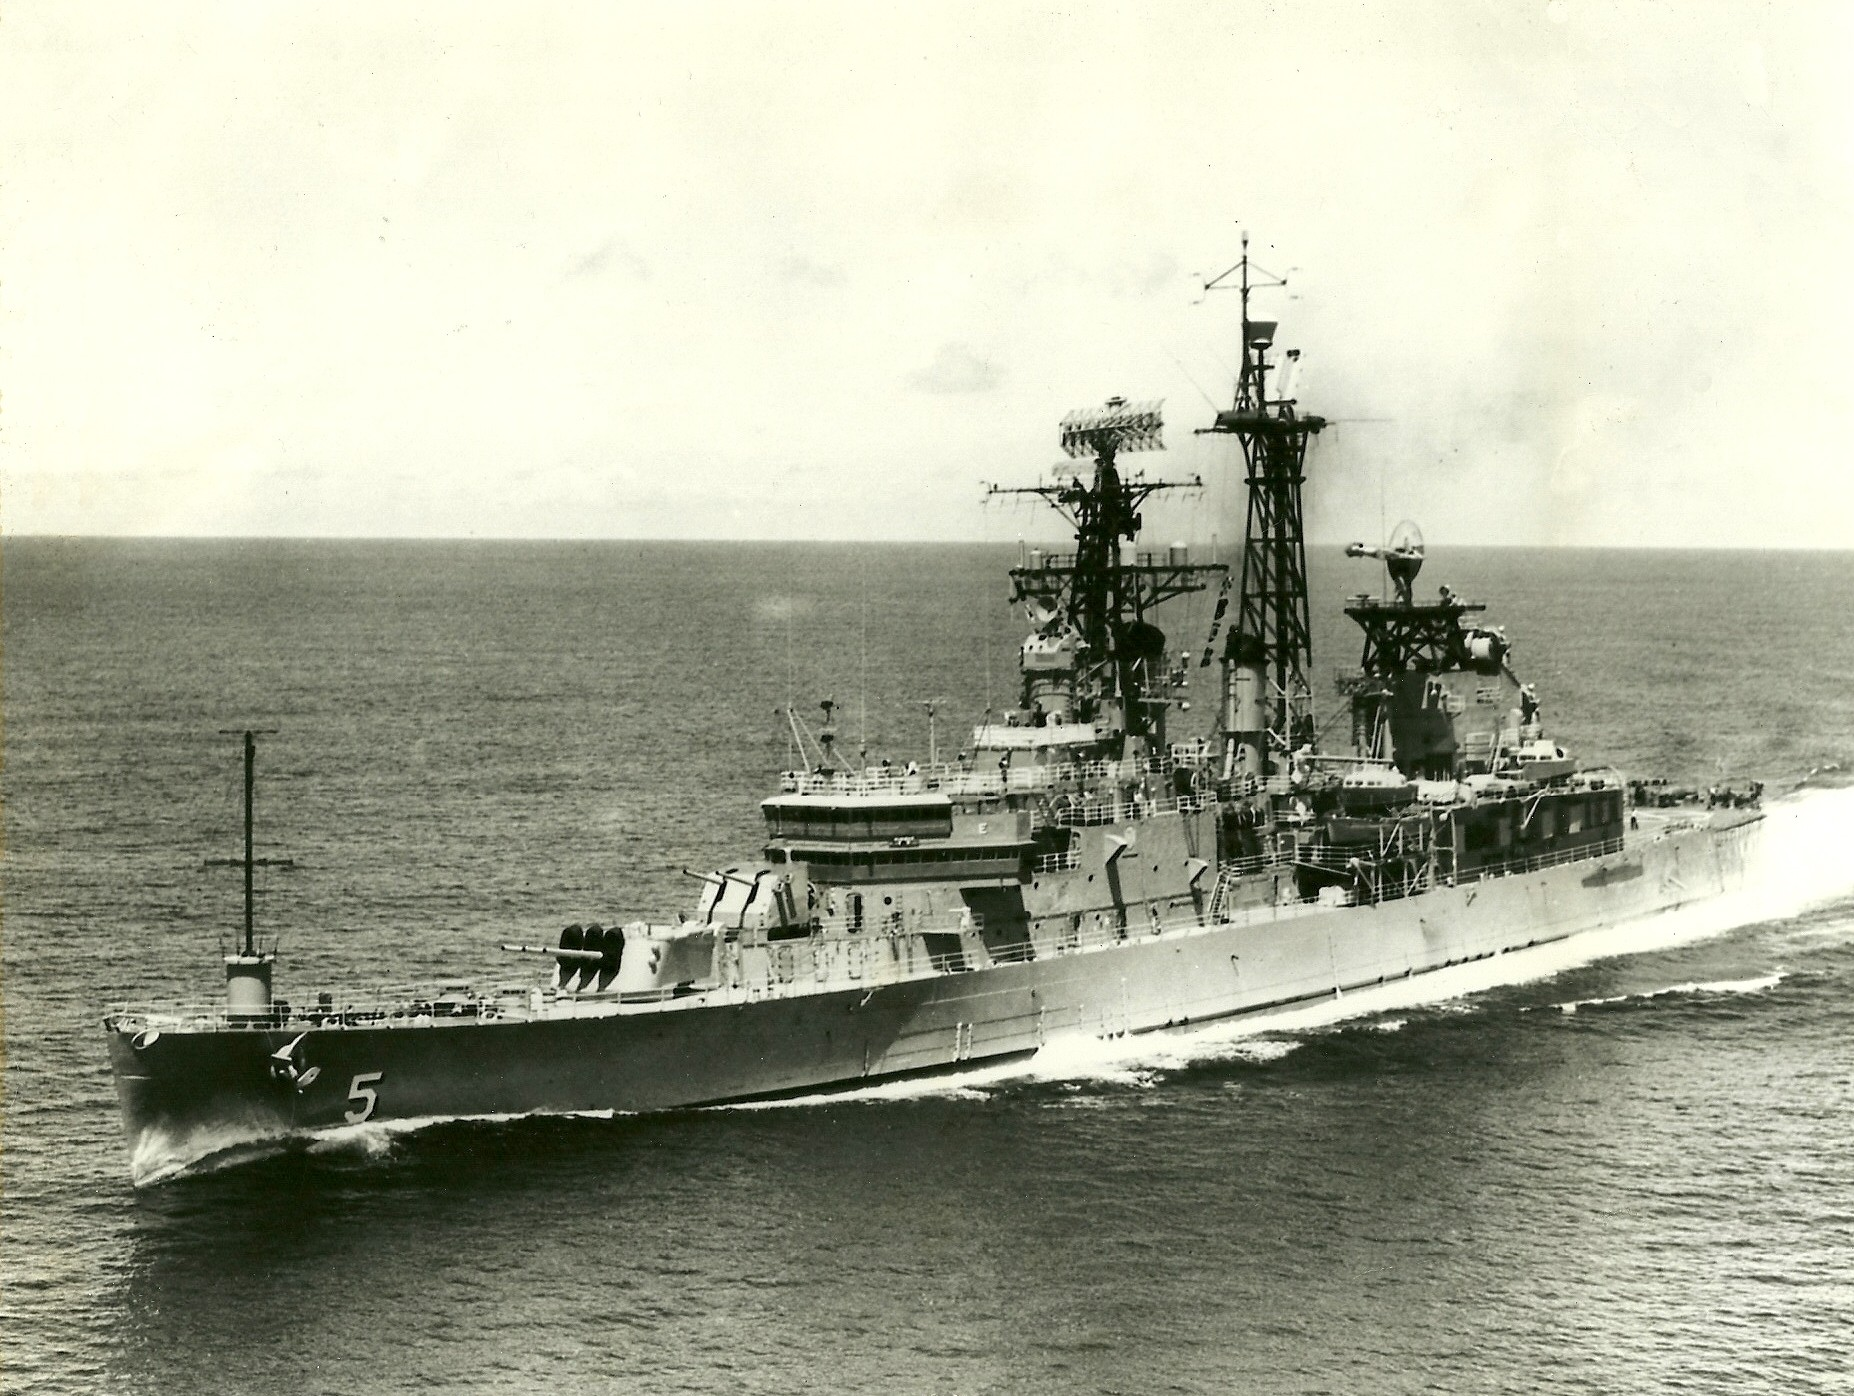 Port bow view while underway, date and location unknown photo by Charles Lamm via navsource